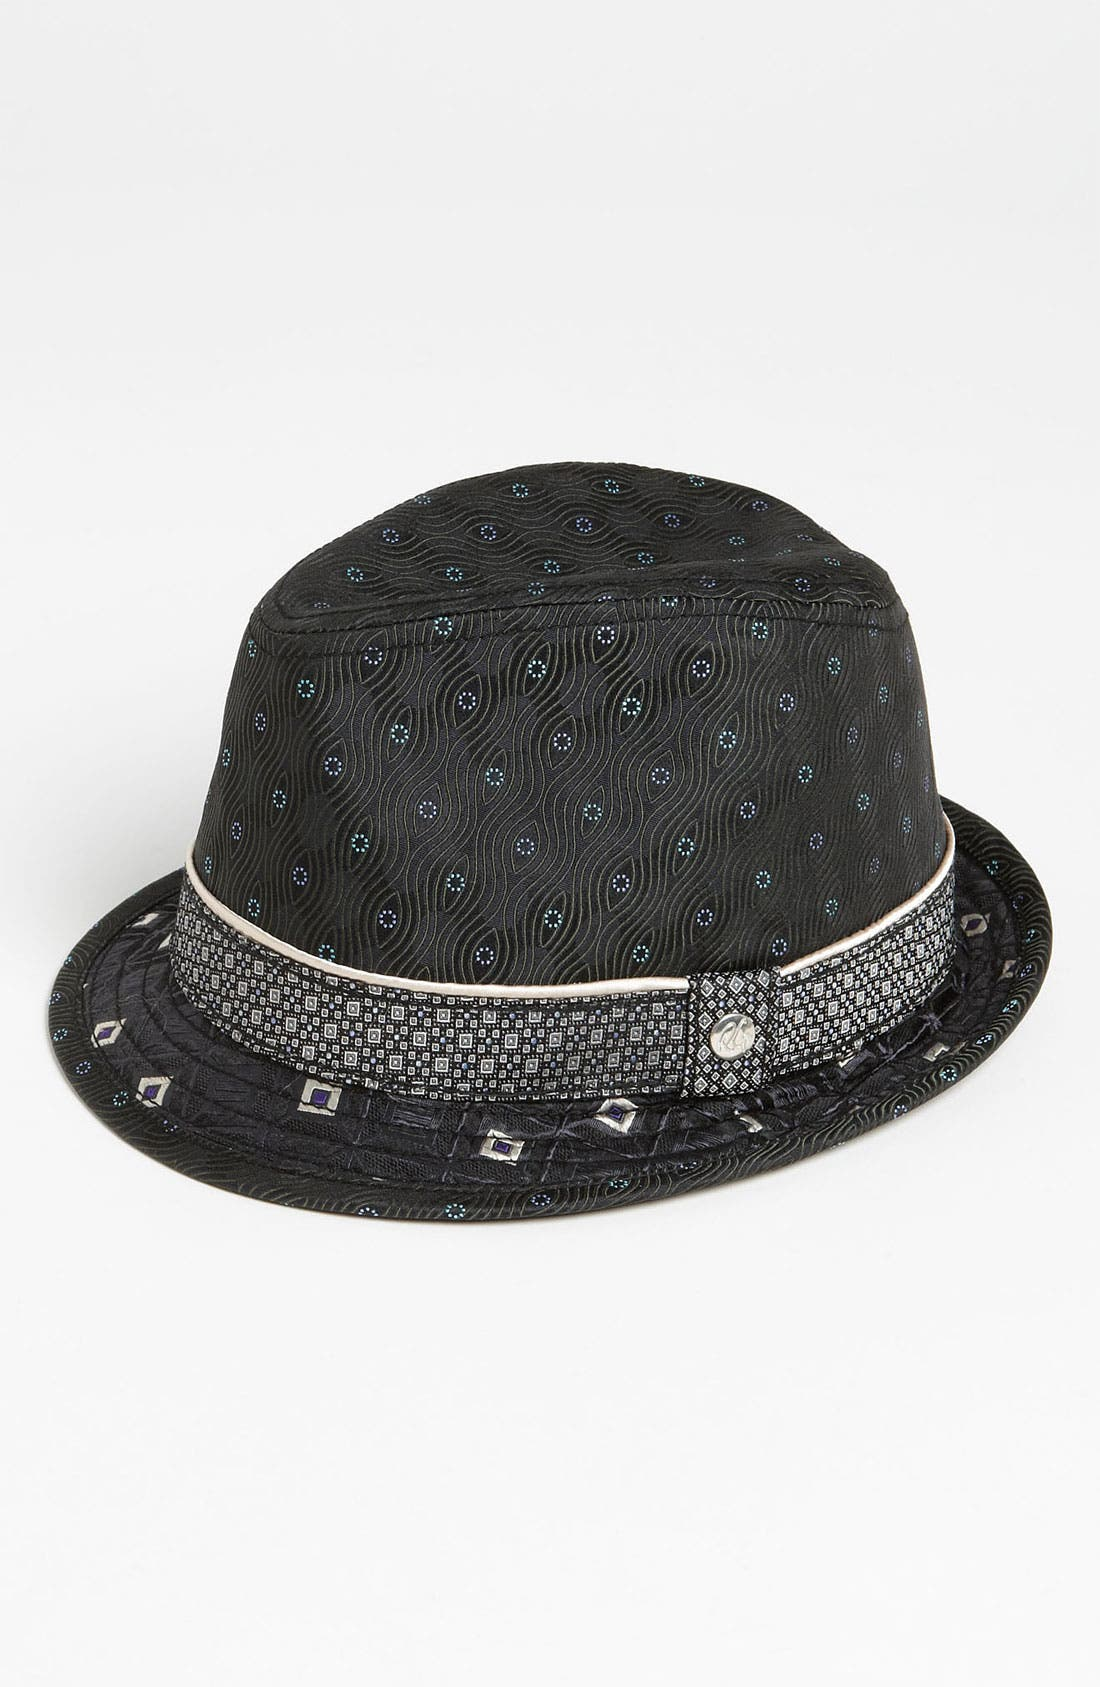 Alternate Image 1 Selected - Robert Graham 'Boleyn' Fedora